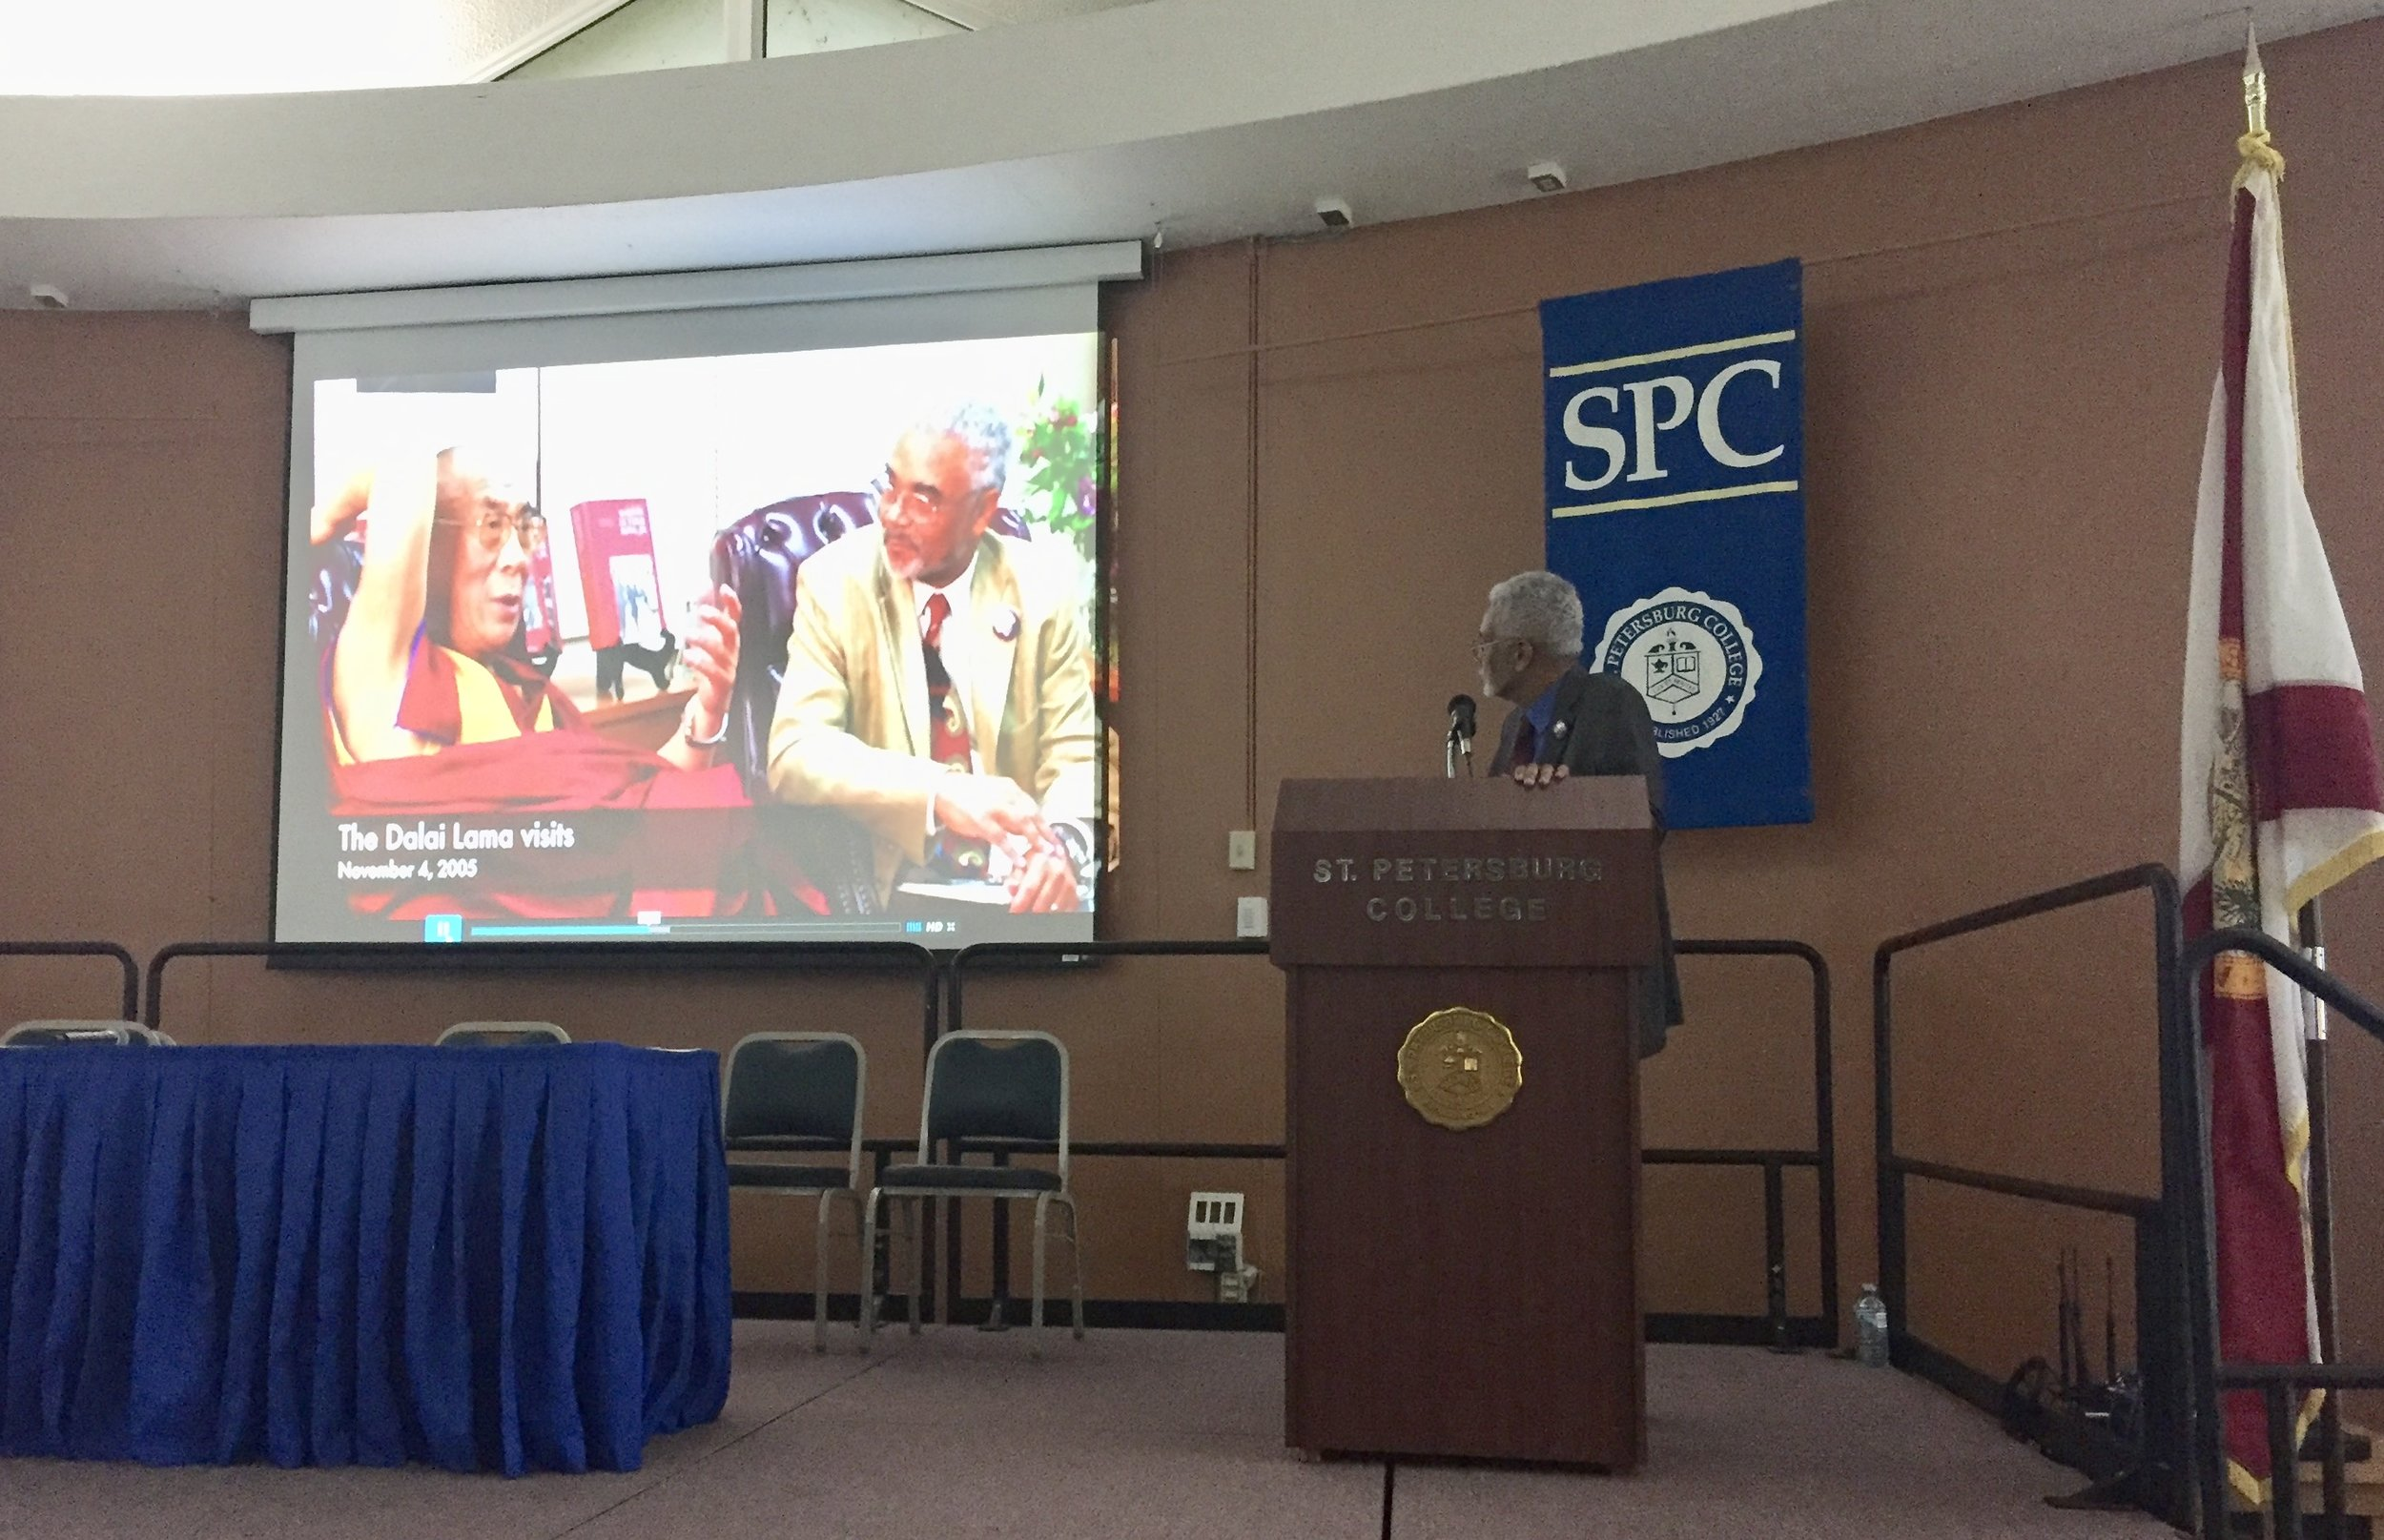 Speaking Events - The first major speaking event sponsored by The Power of Song Inc. featured Stanford University history professor Dr. Clayborne Carson, one of the nation's leading civil rights experts and director of Martin Luther King Research and Education Institute.